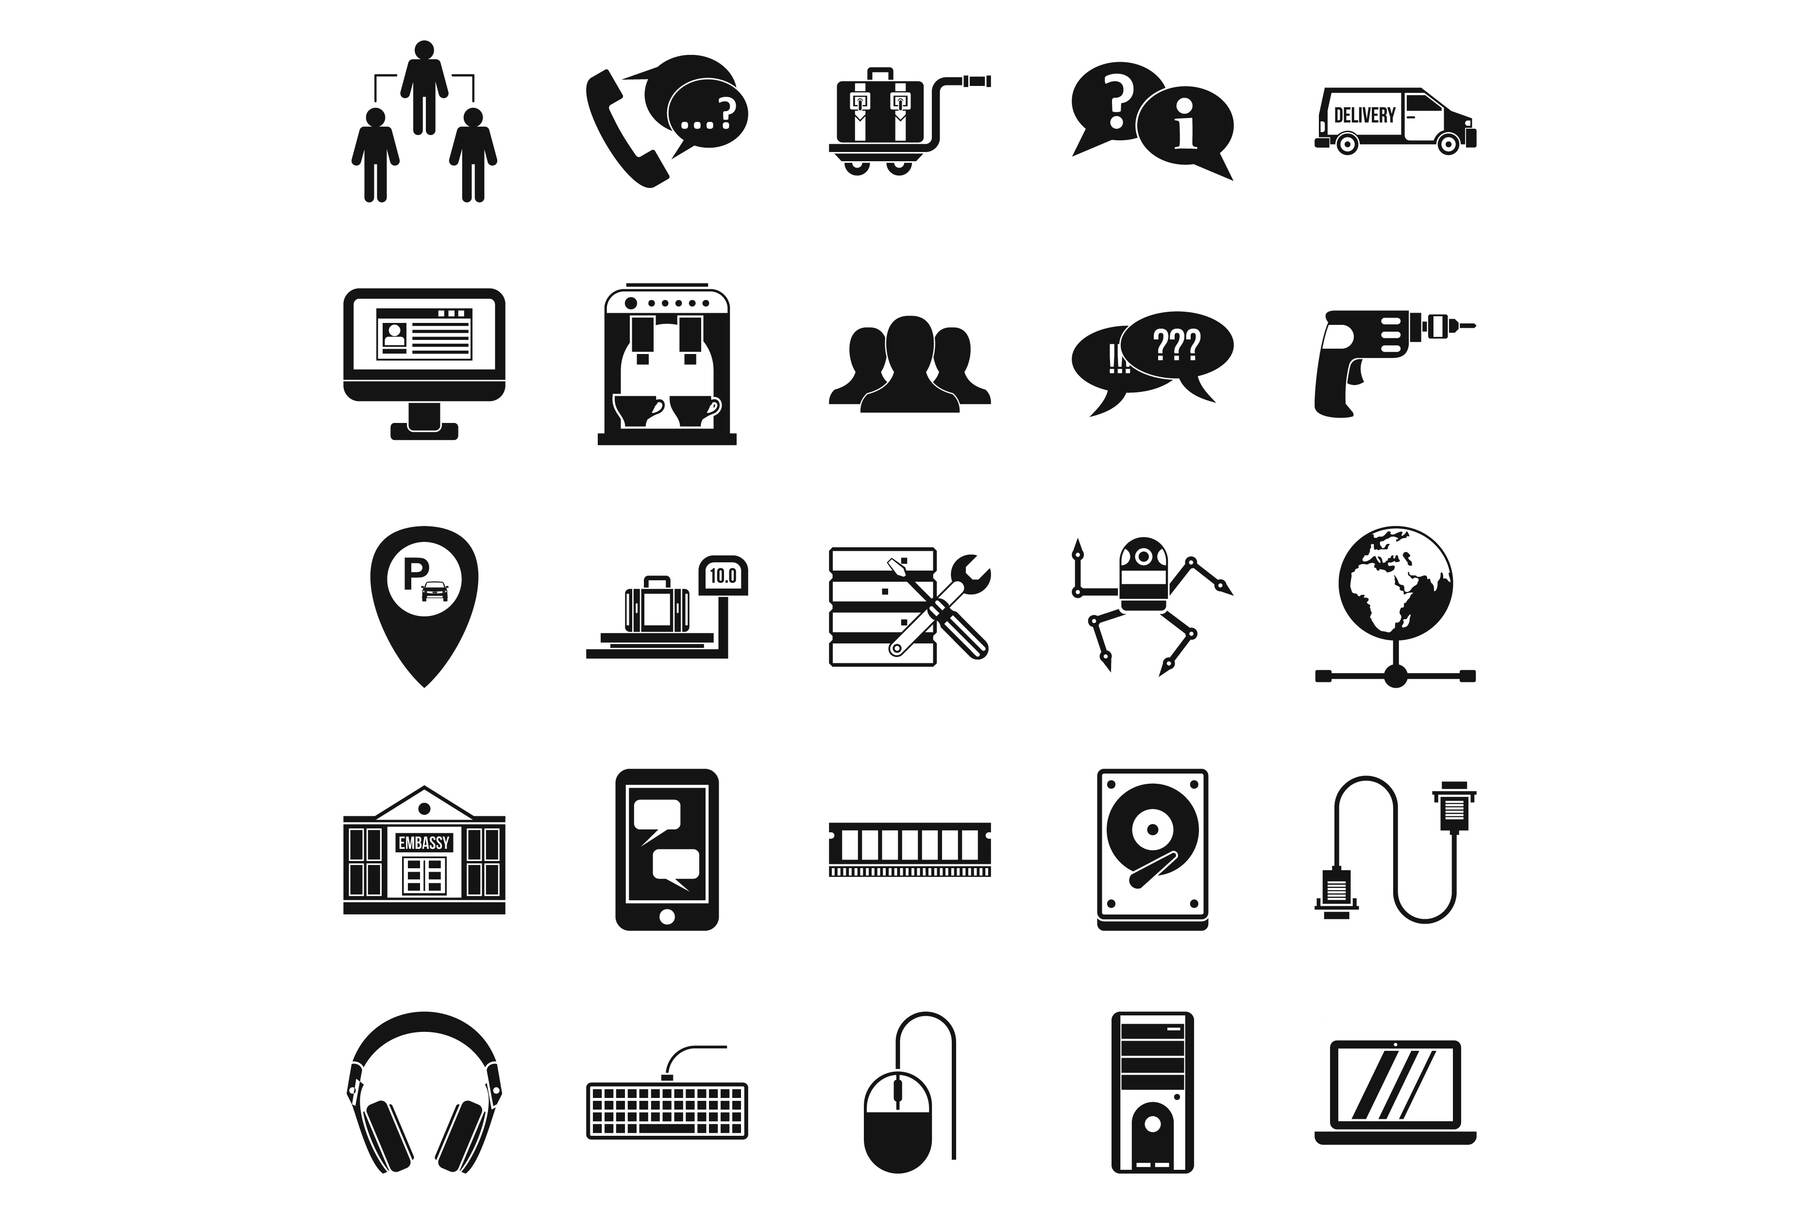 Headset icons set, simple style example image 1